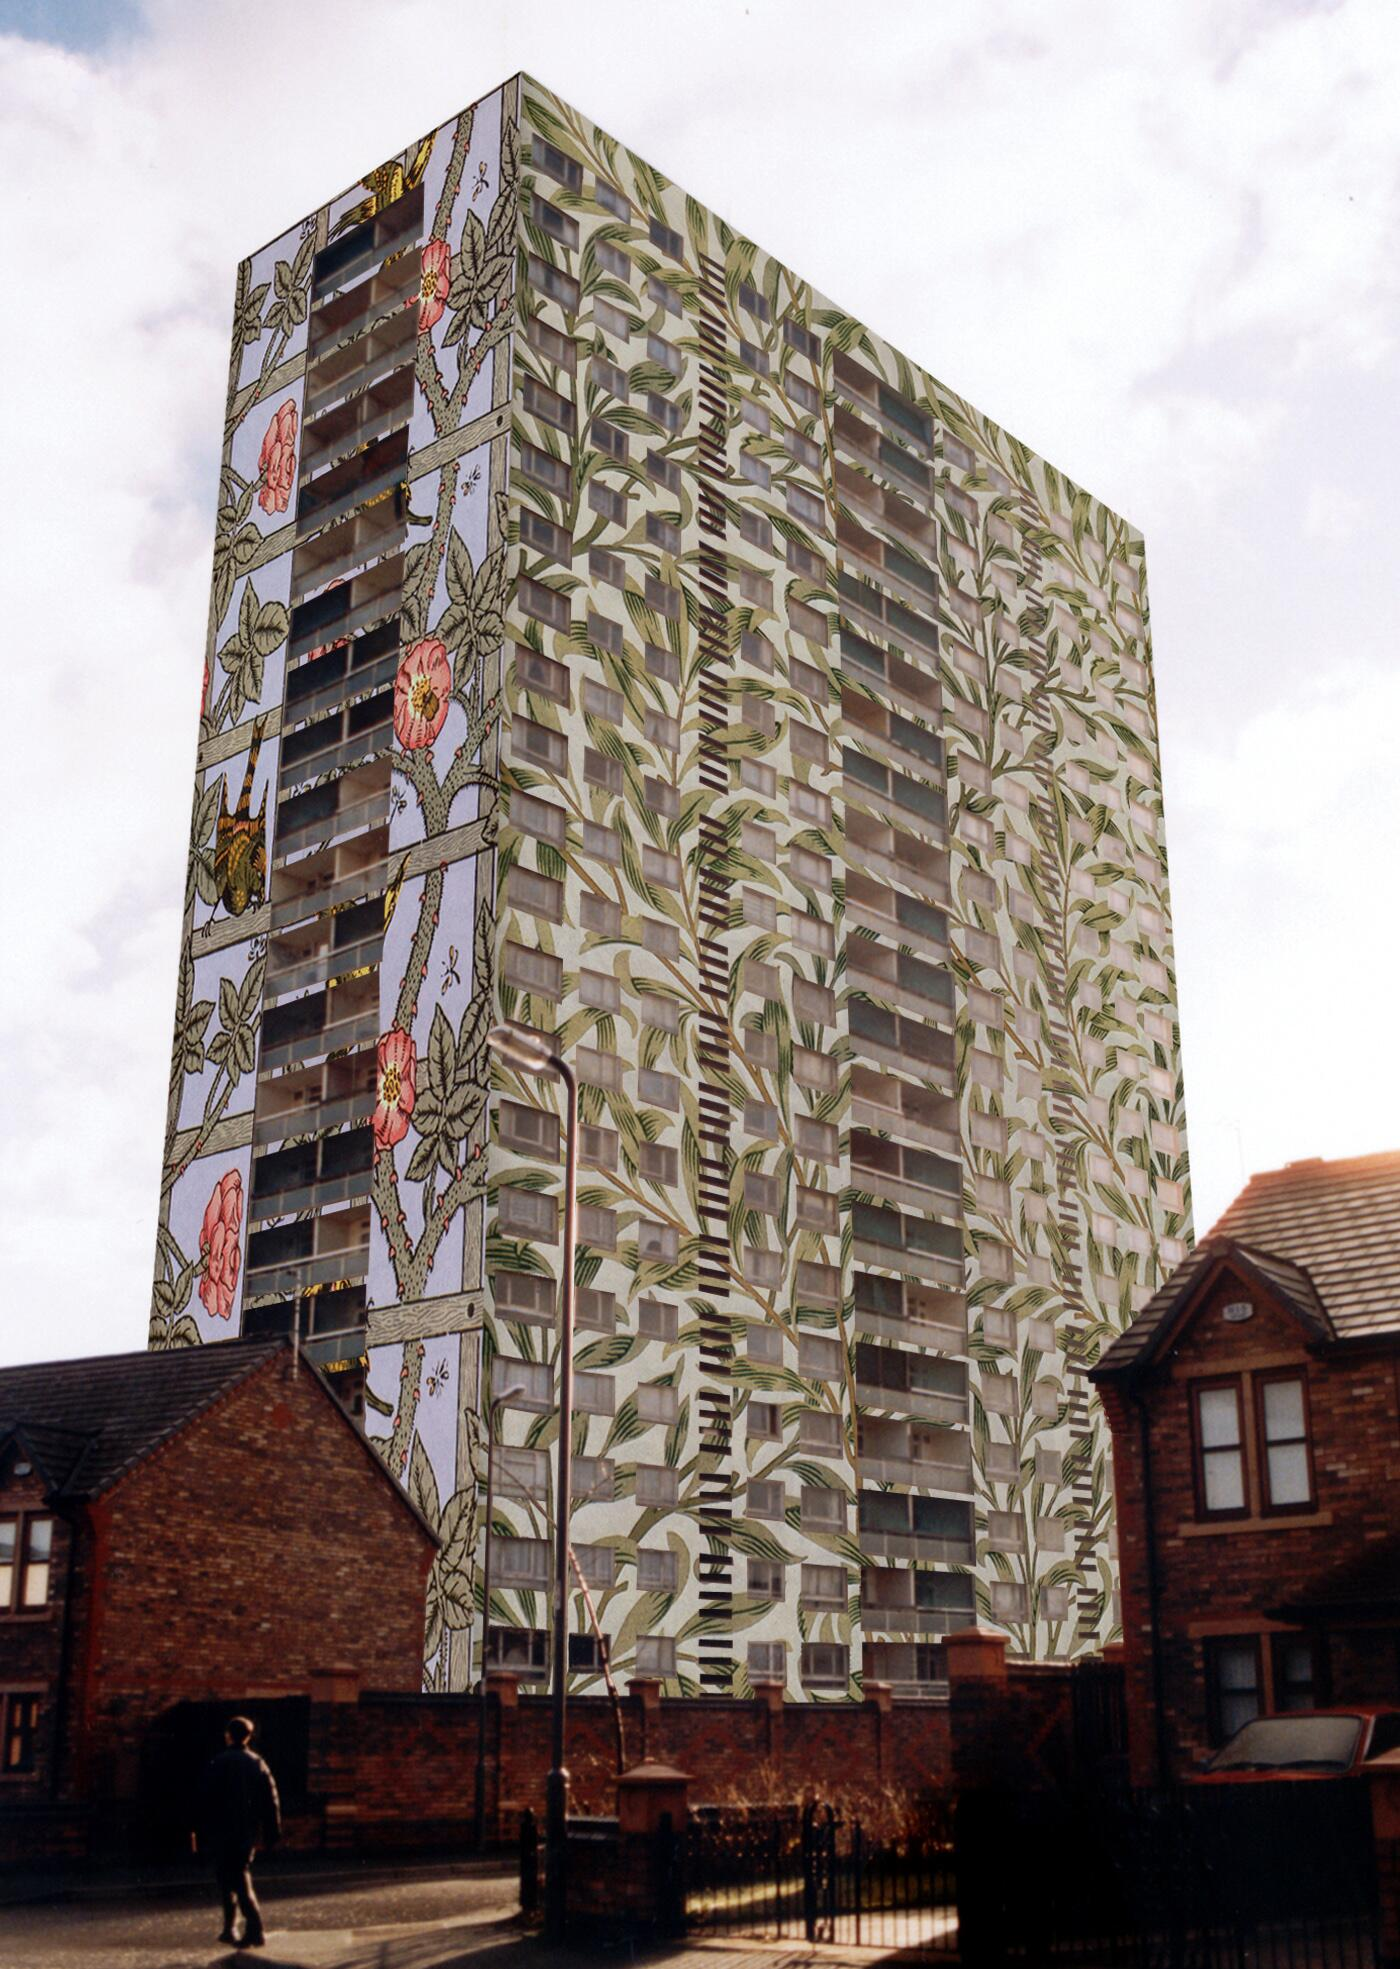 RT @ClareHoldstock: @modernistmag David Mabb's unrealised 'Transitional Monument' 2004, Linosa Close, Liverpool. http://t.co/vuqxgAT8Yo